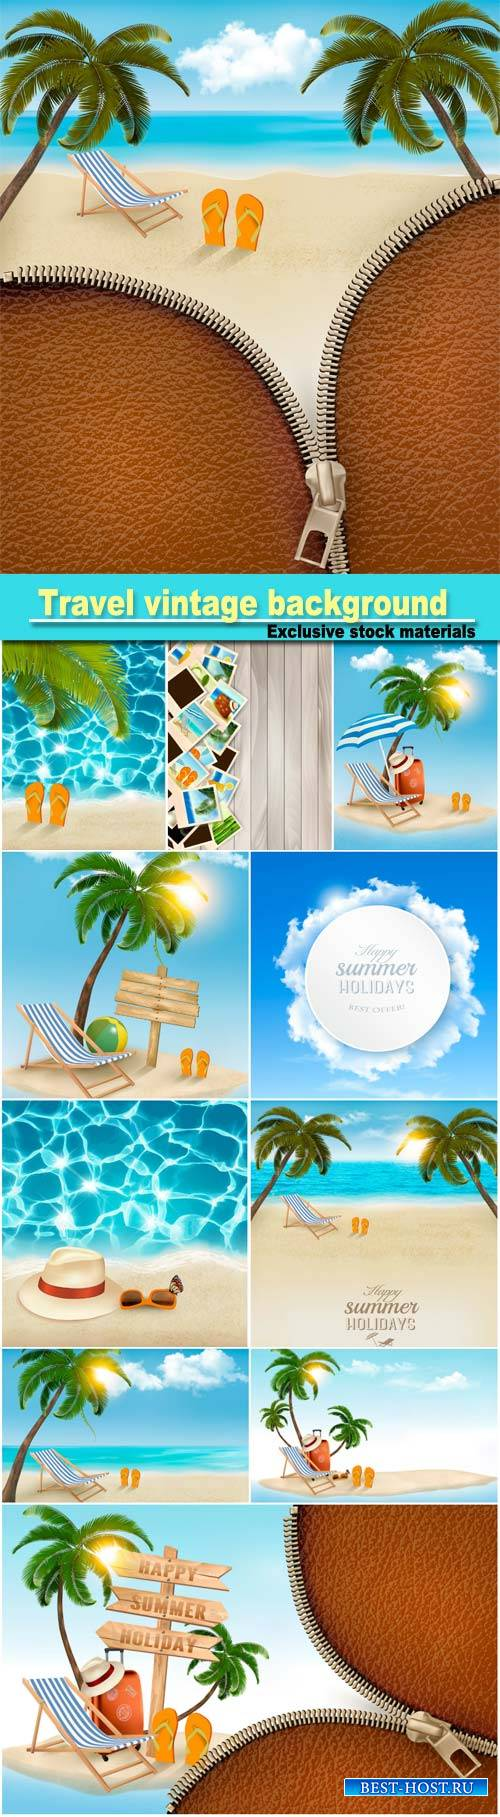 Travel vintage background with palm tree and gold beach